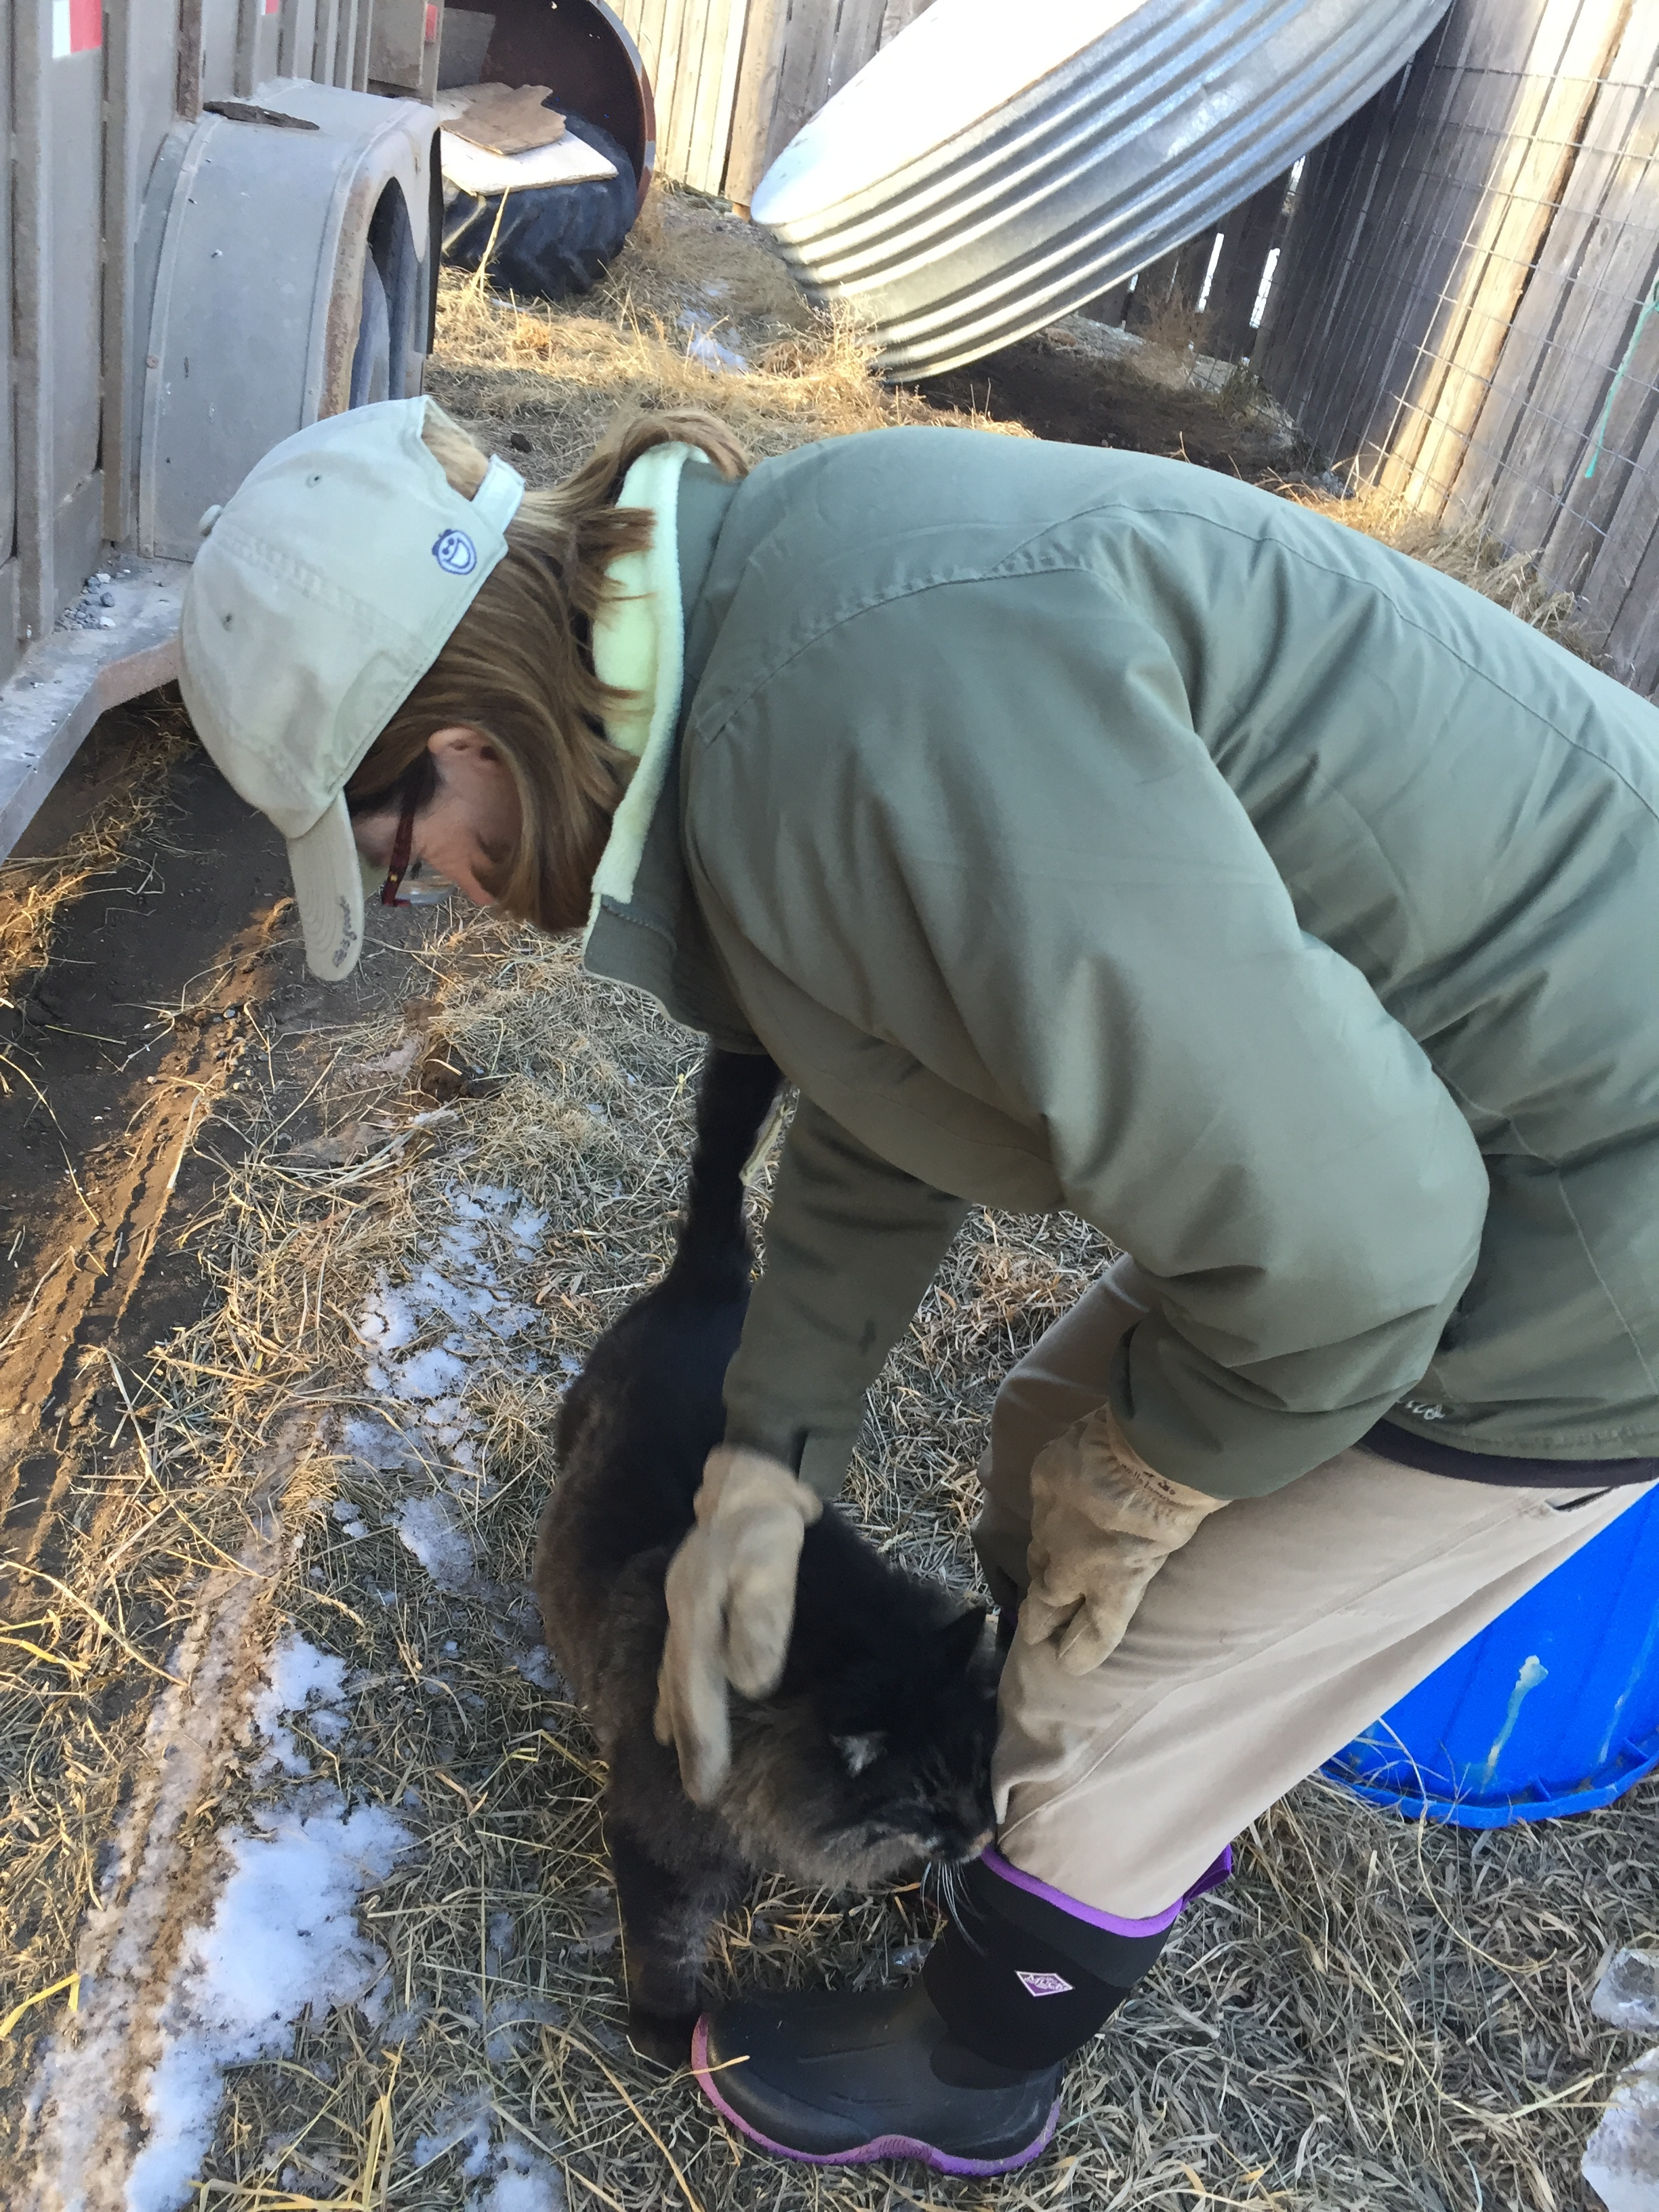 Kinke is a major animal lover. Everywhere she goes on the ranch, she is talking to and interacting with animals.